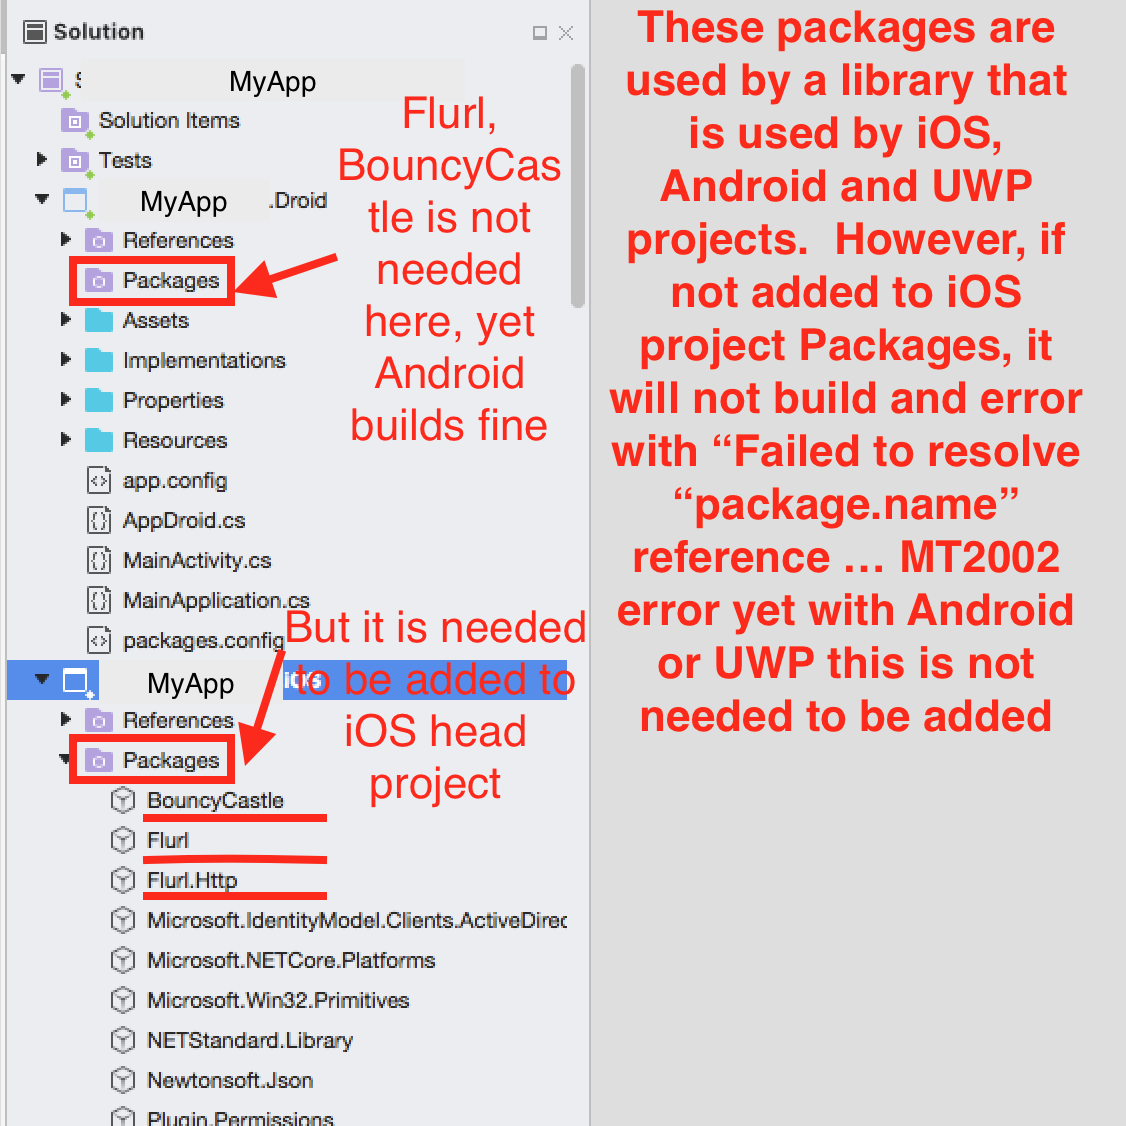 Adding Packages to Libraries used by Android, iOS, and UWP